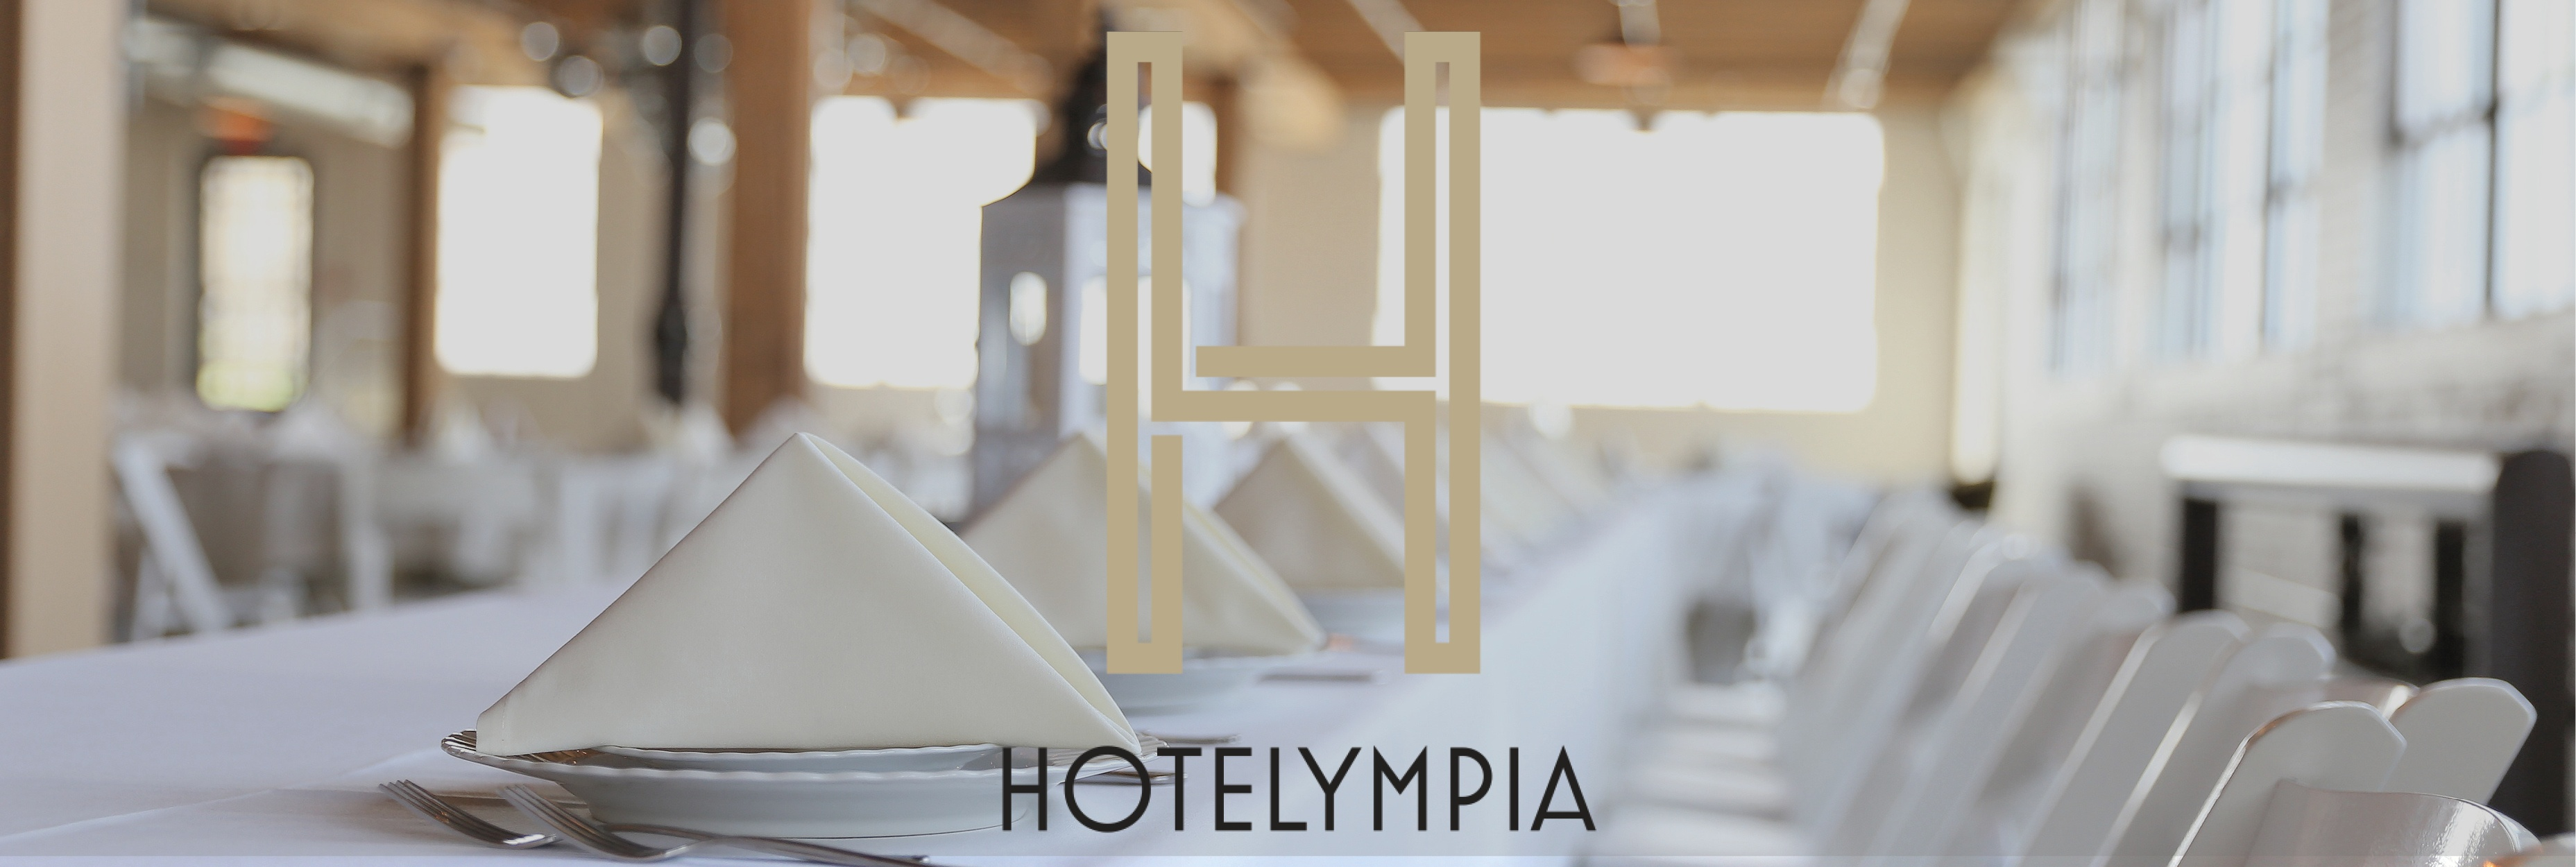 5 Interesting Companies to Watch from the Hotelympia 2016 Show Floor